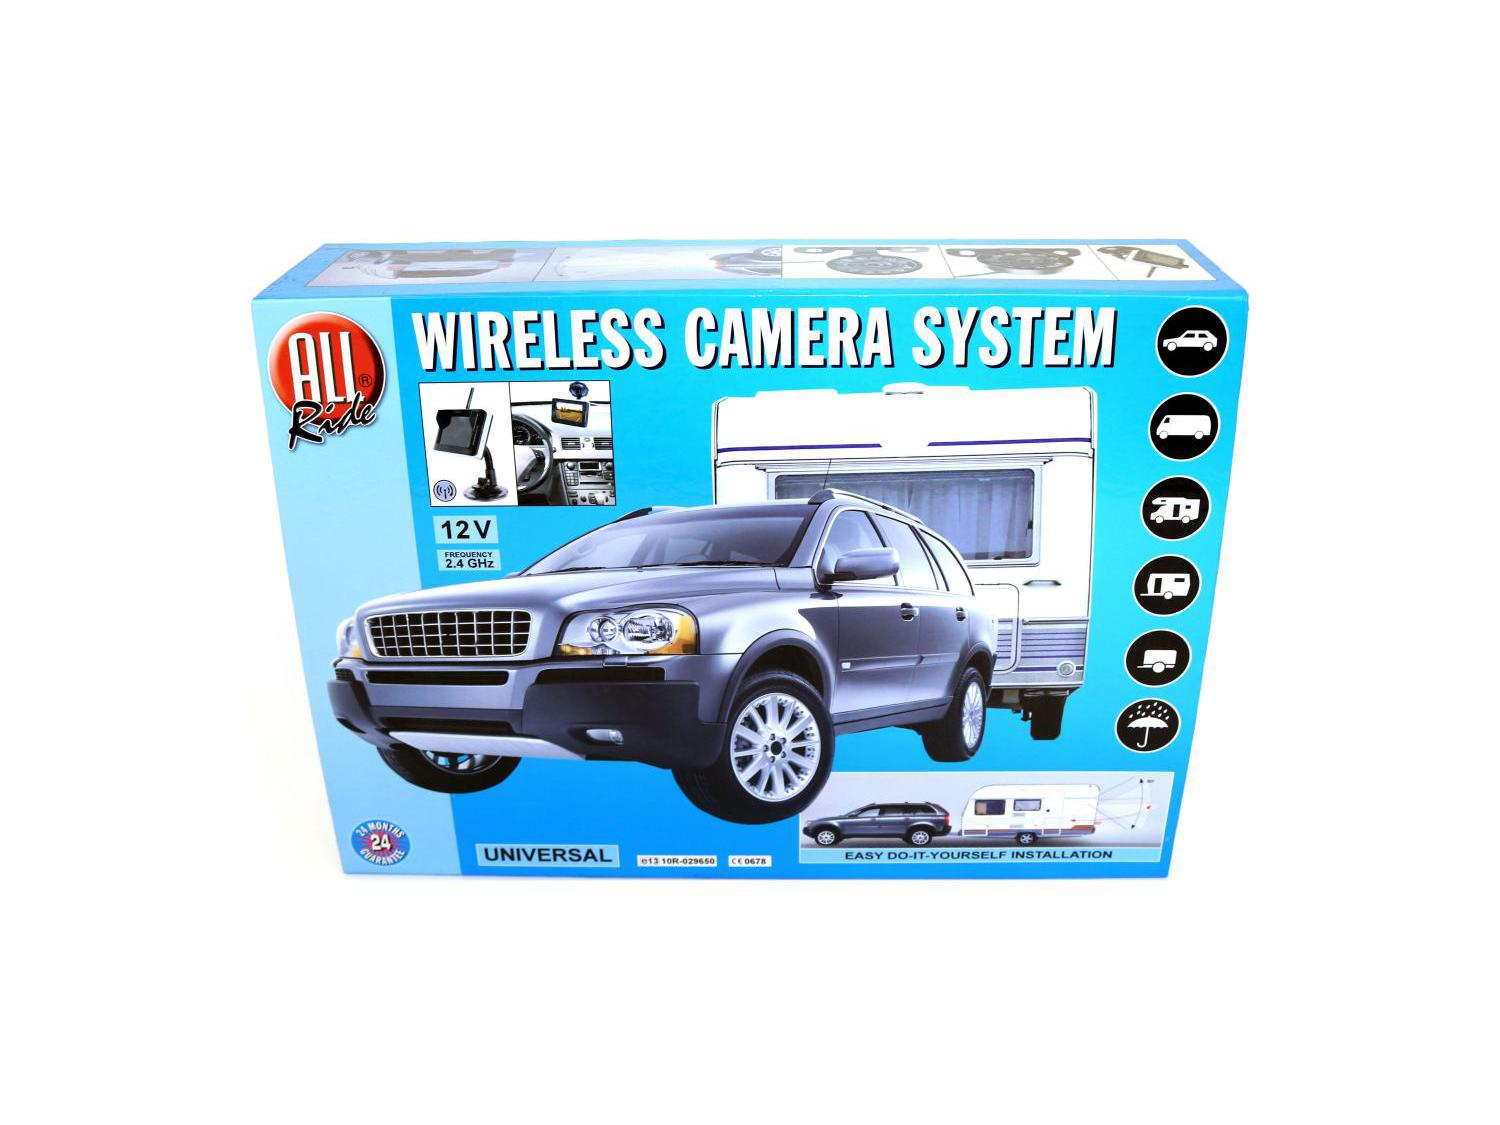 All Ride Wireless Camera System